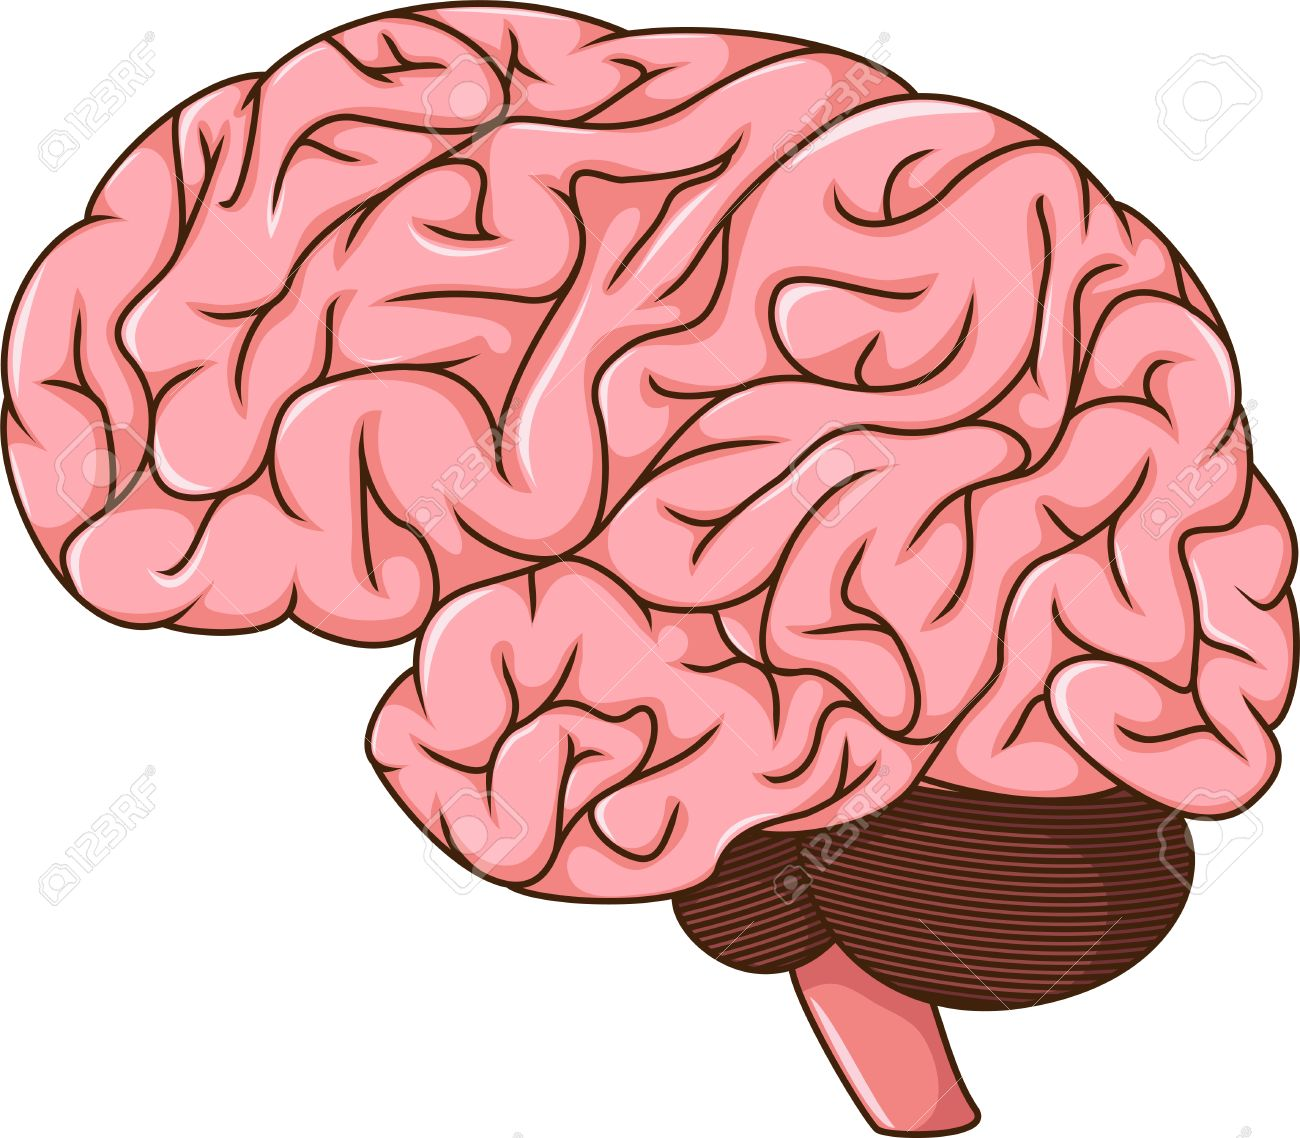 Cartoon picture of a human brain